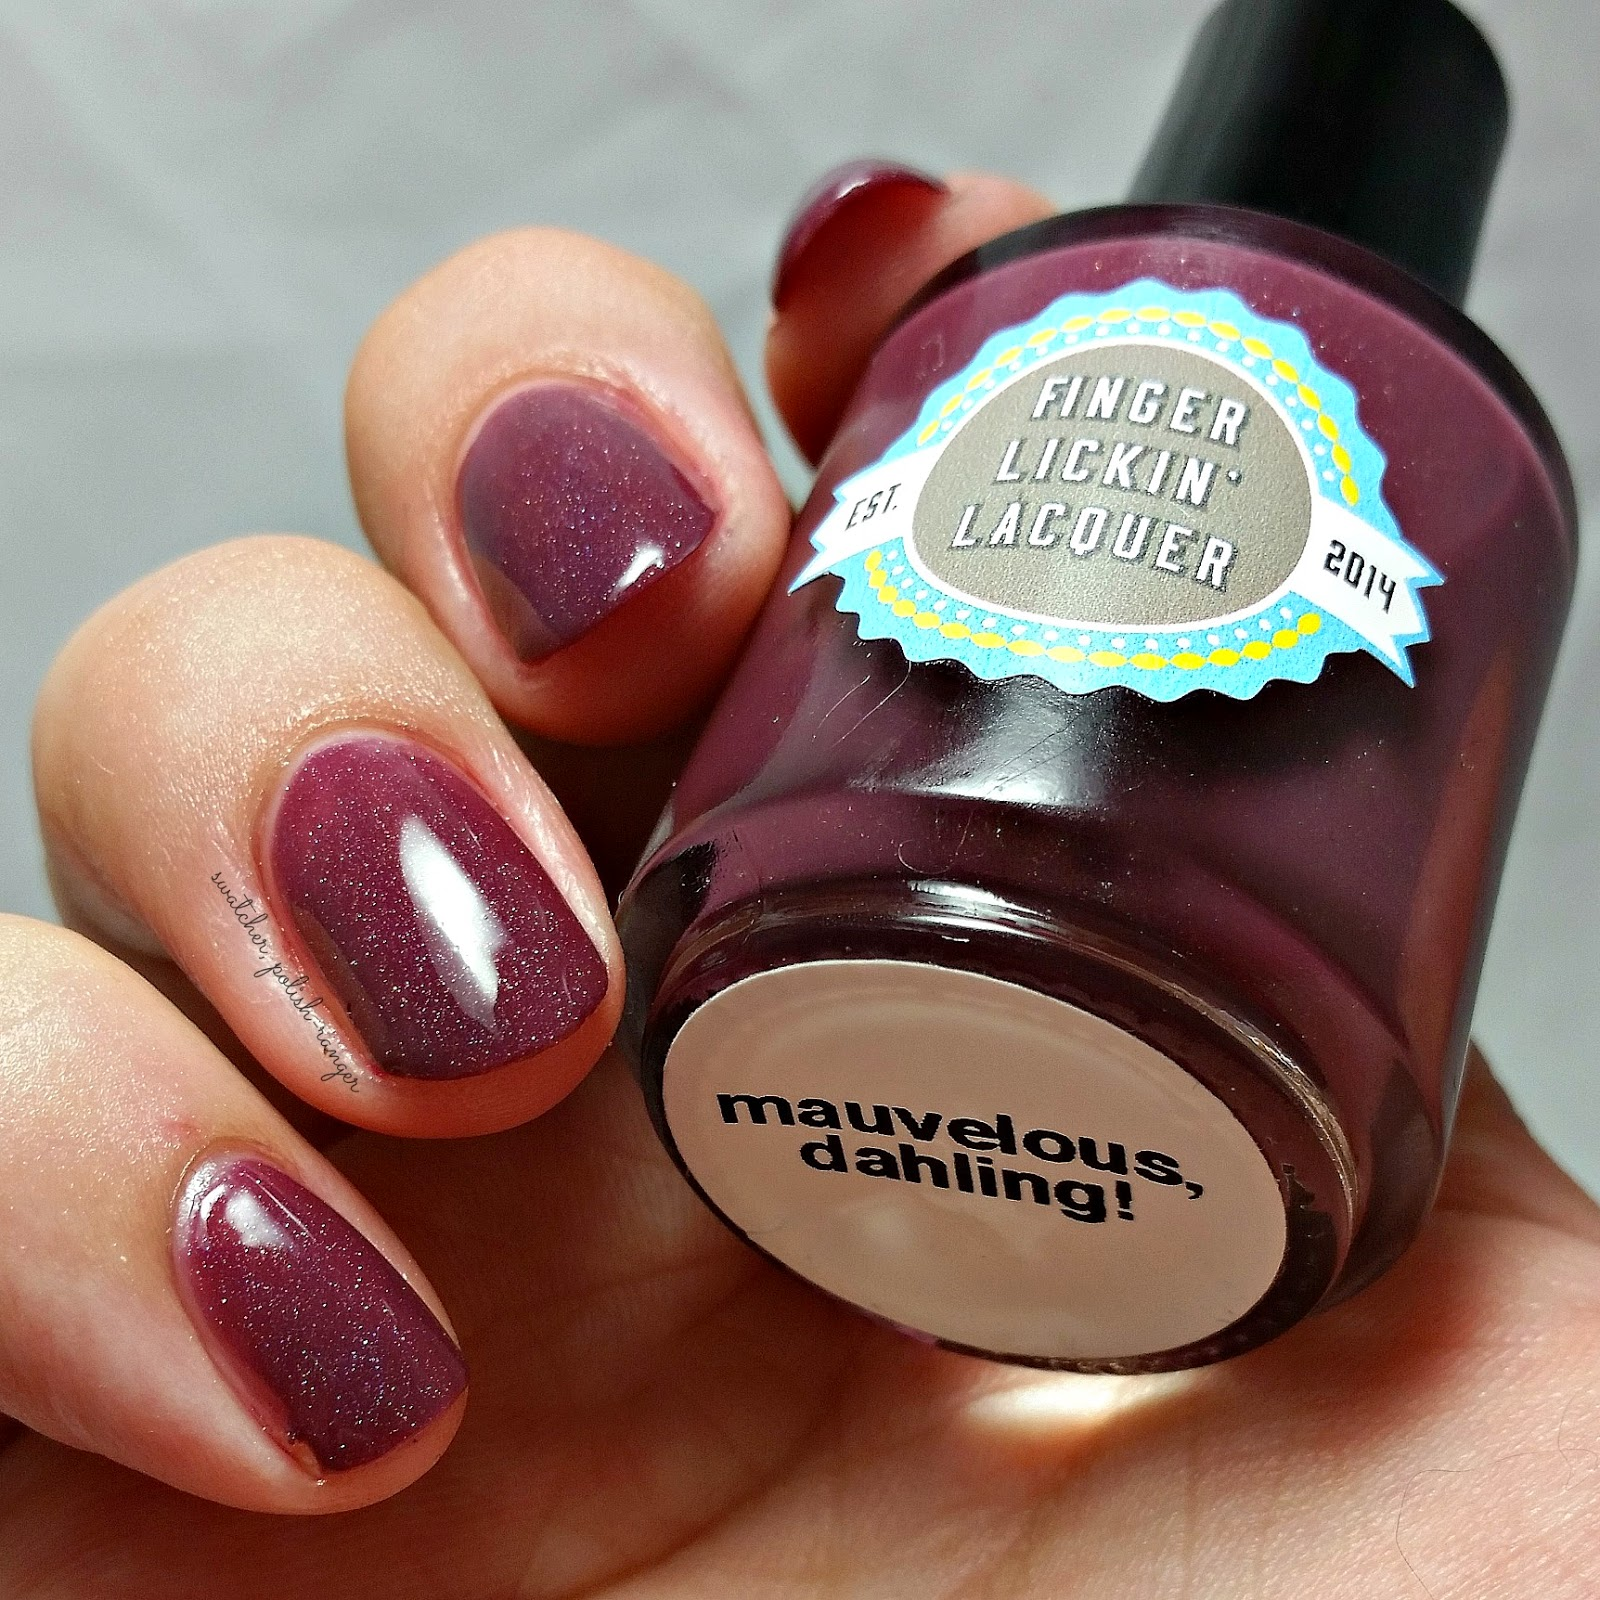 Finger Lickin' Lacquer Mauvelous Dahling! swatch